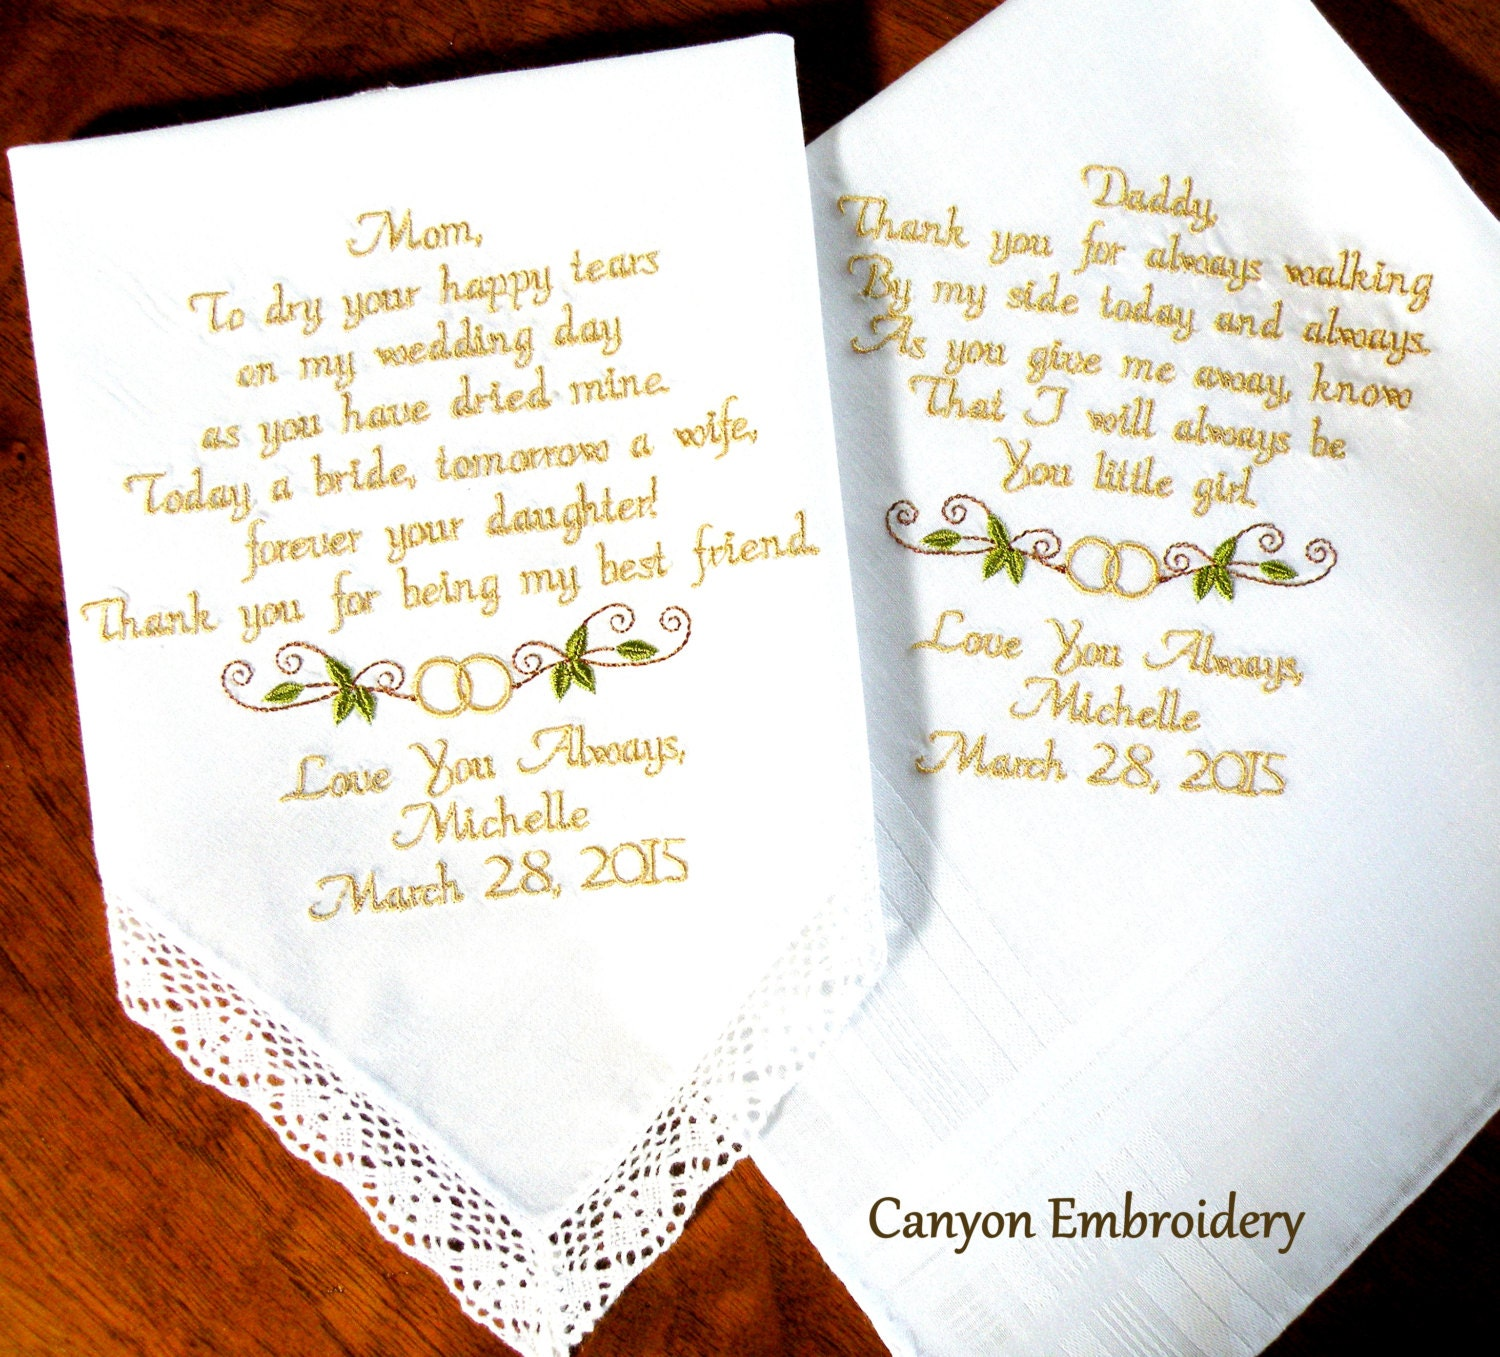 Embroidered wedding handkerchief gifts for mom